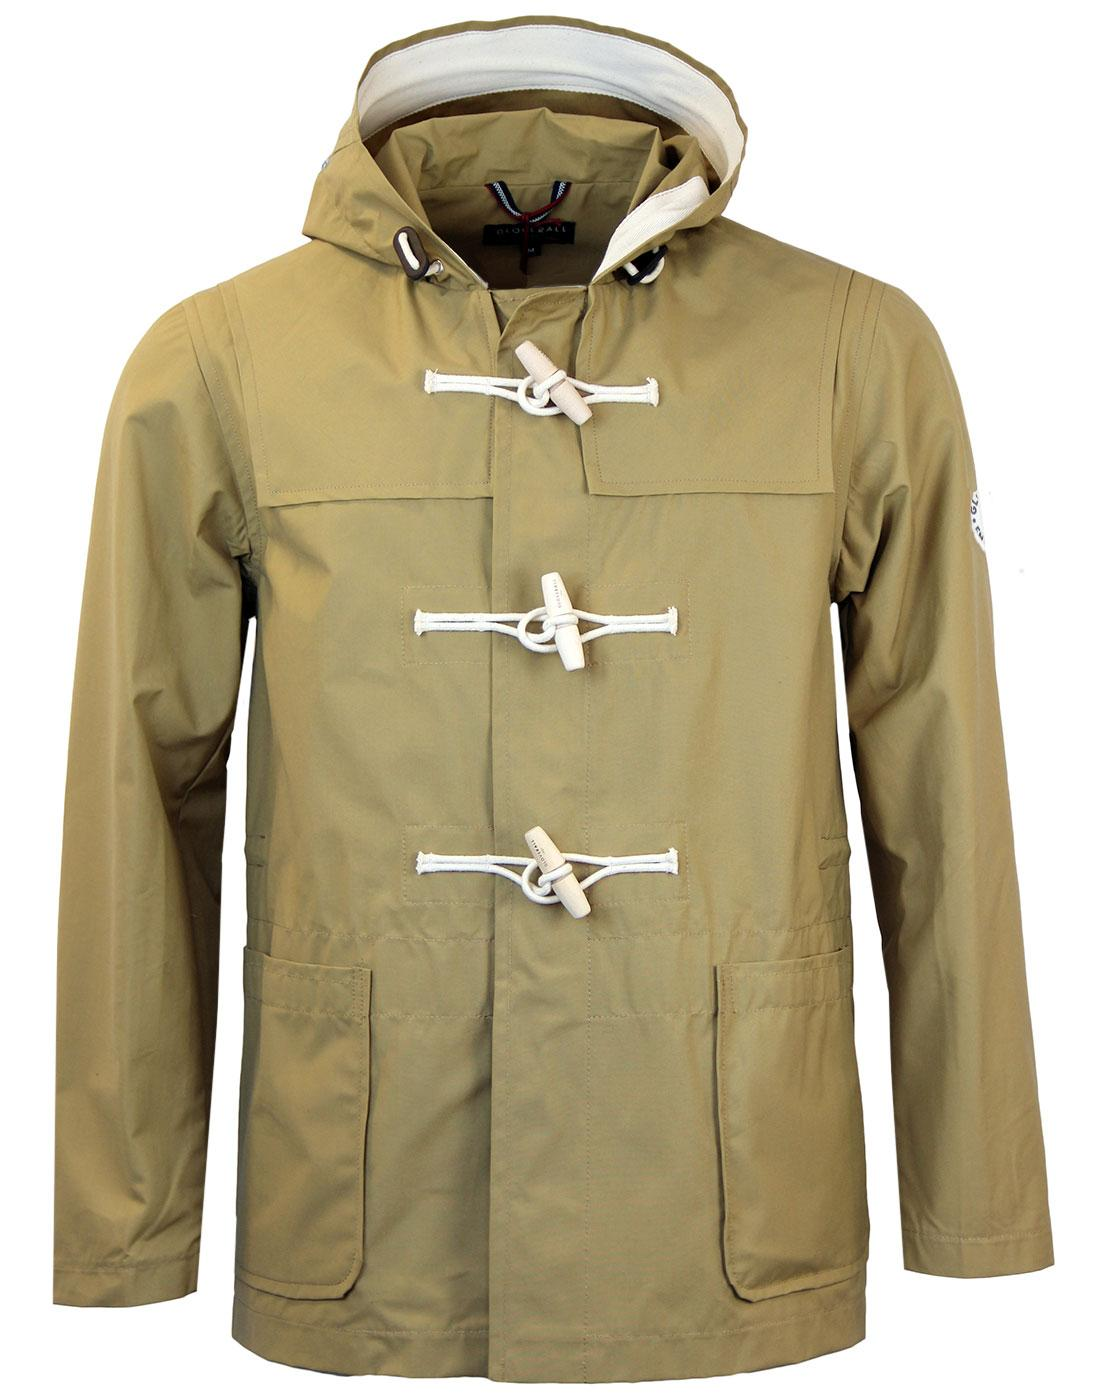 Gloverall Duffle Coats & Jackets For Men | Atom Retro